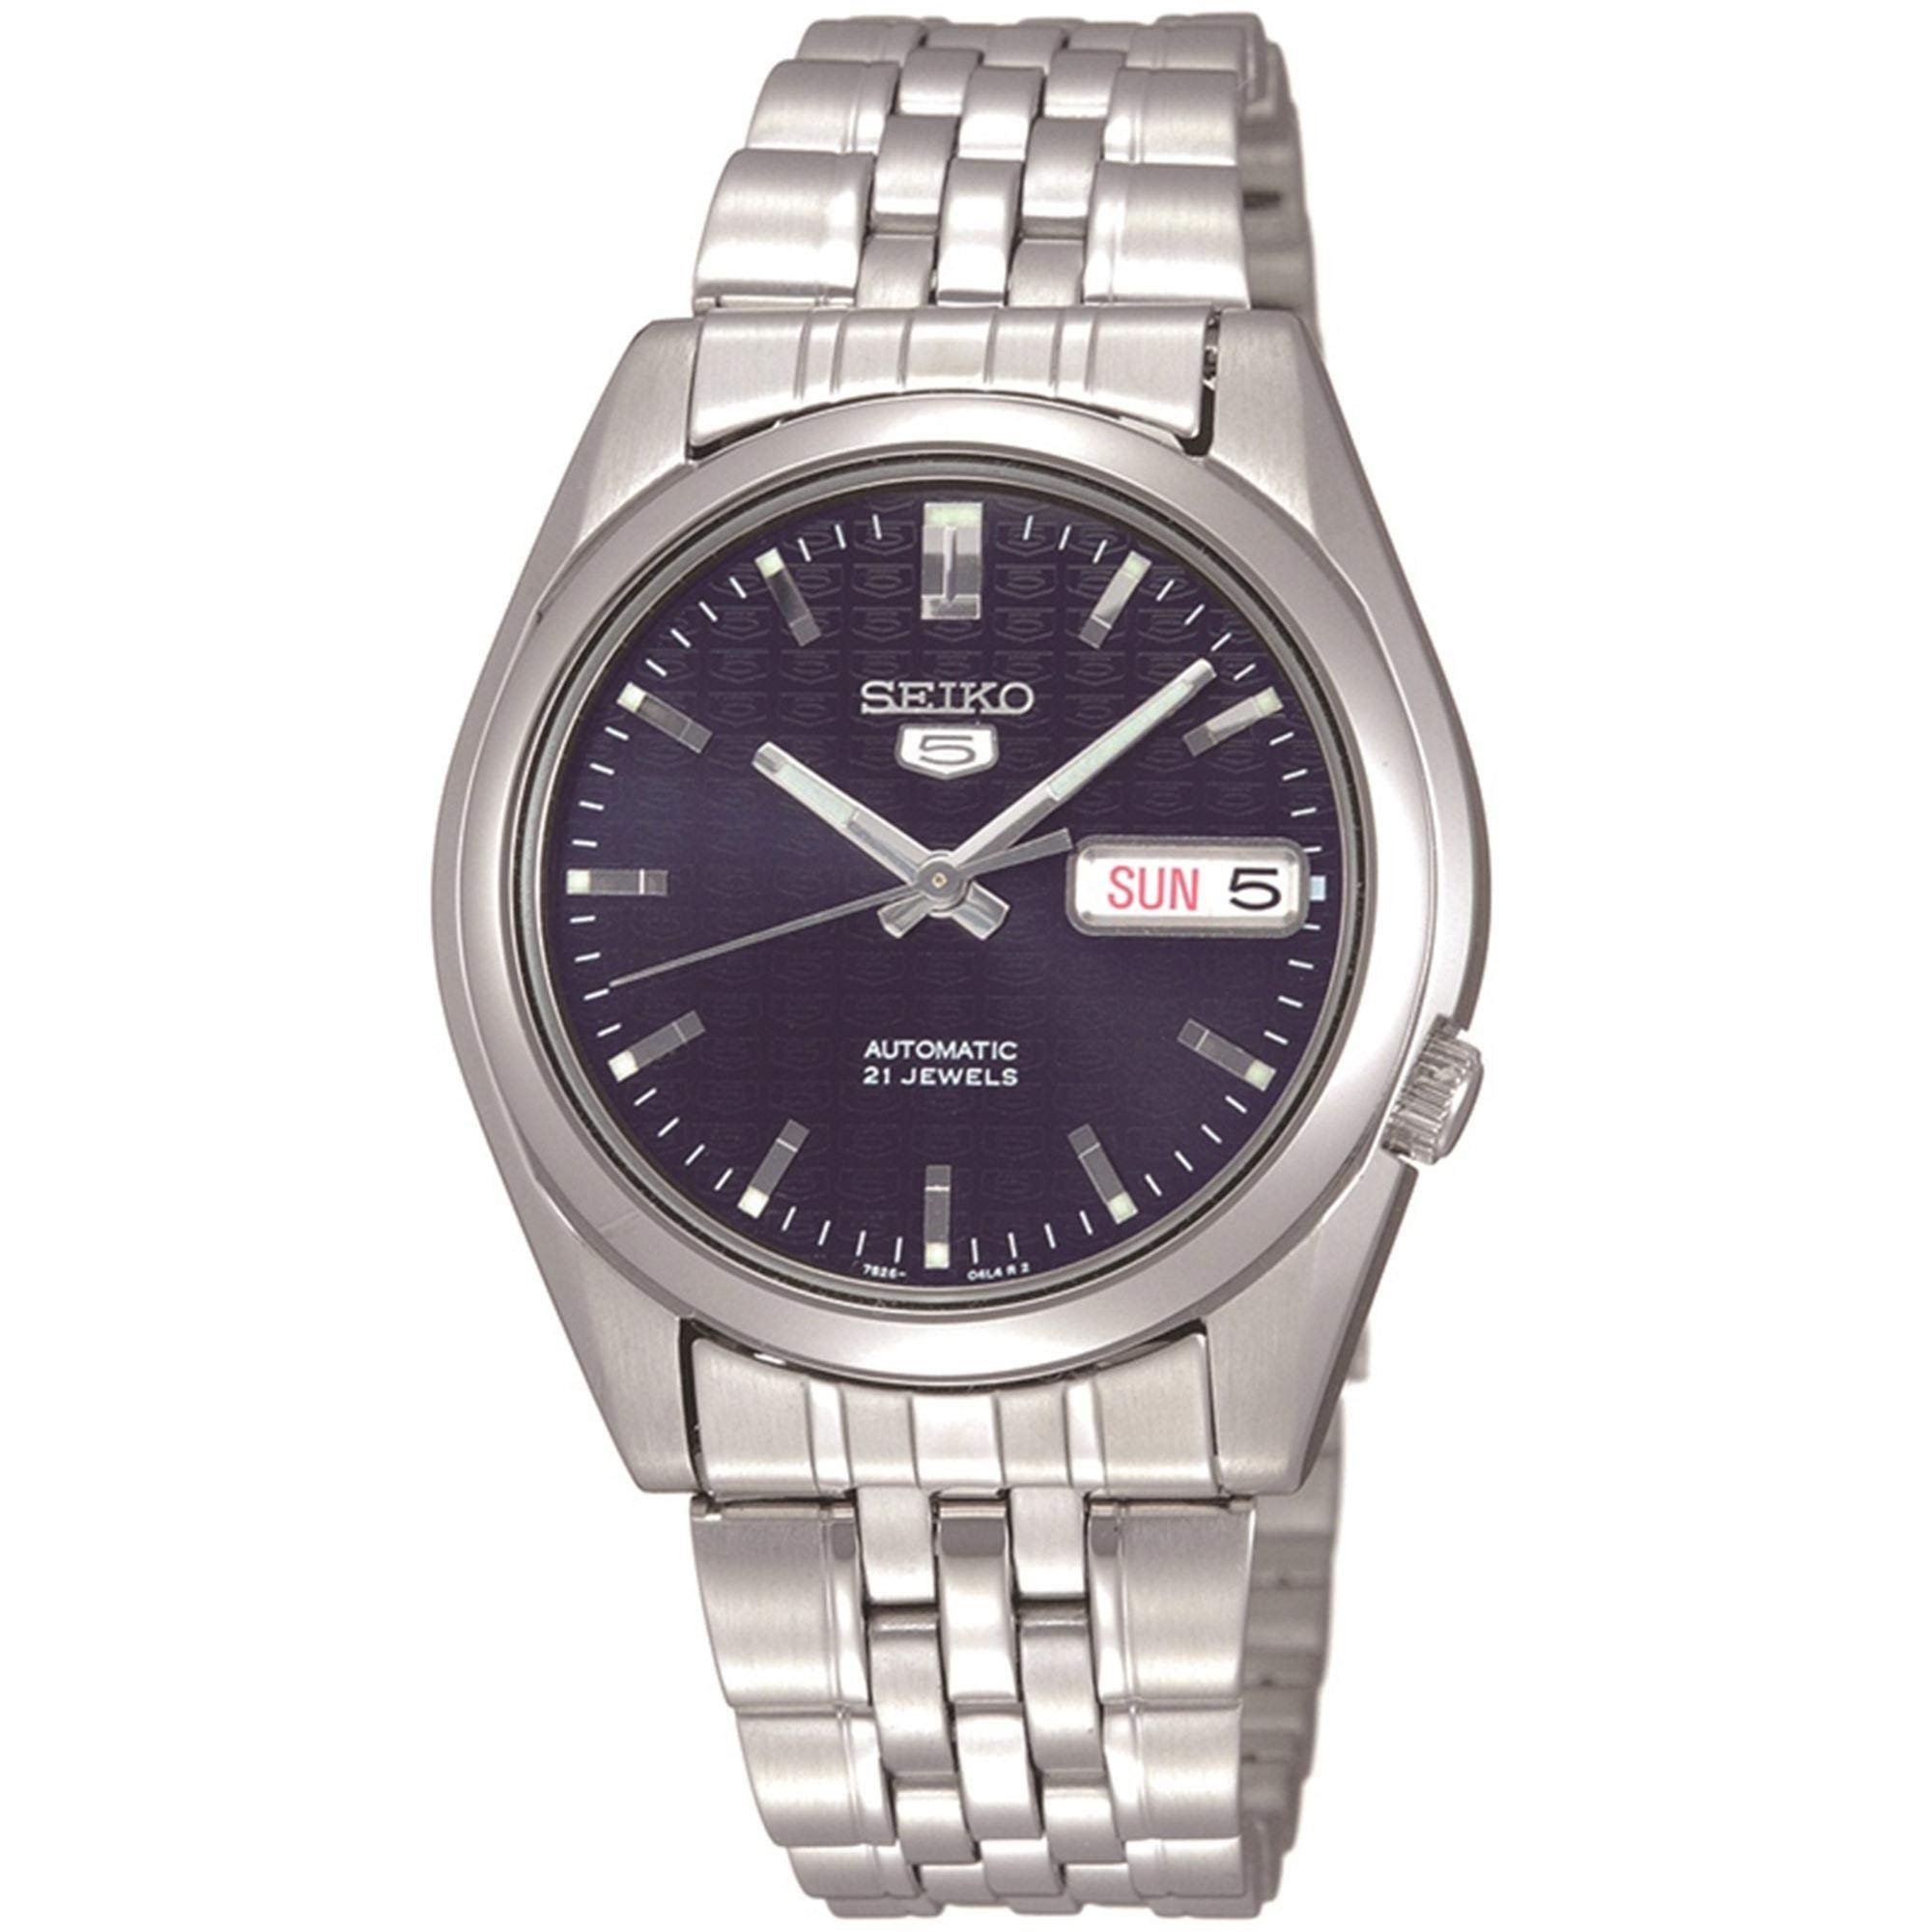 Men's SNK357 Automatic Stainless Steel Dress Watch